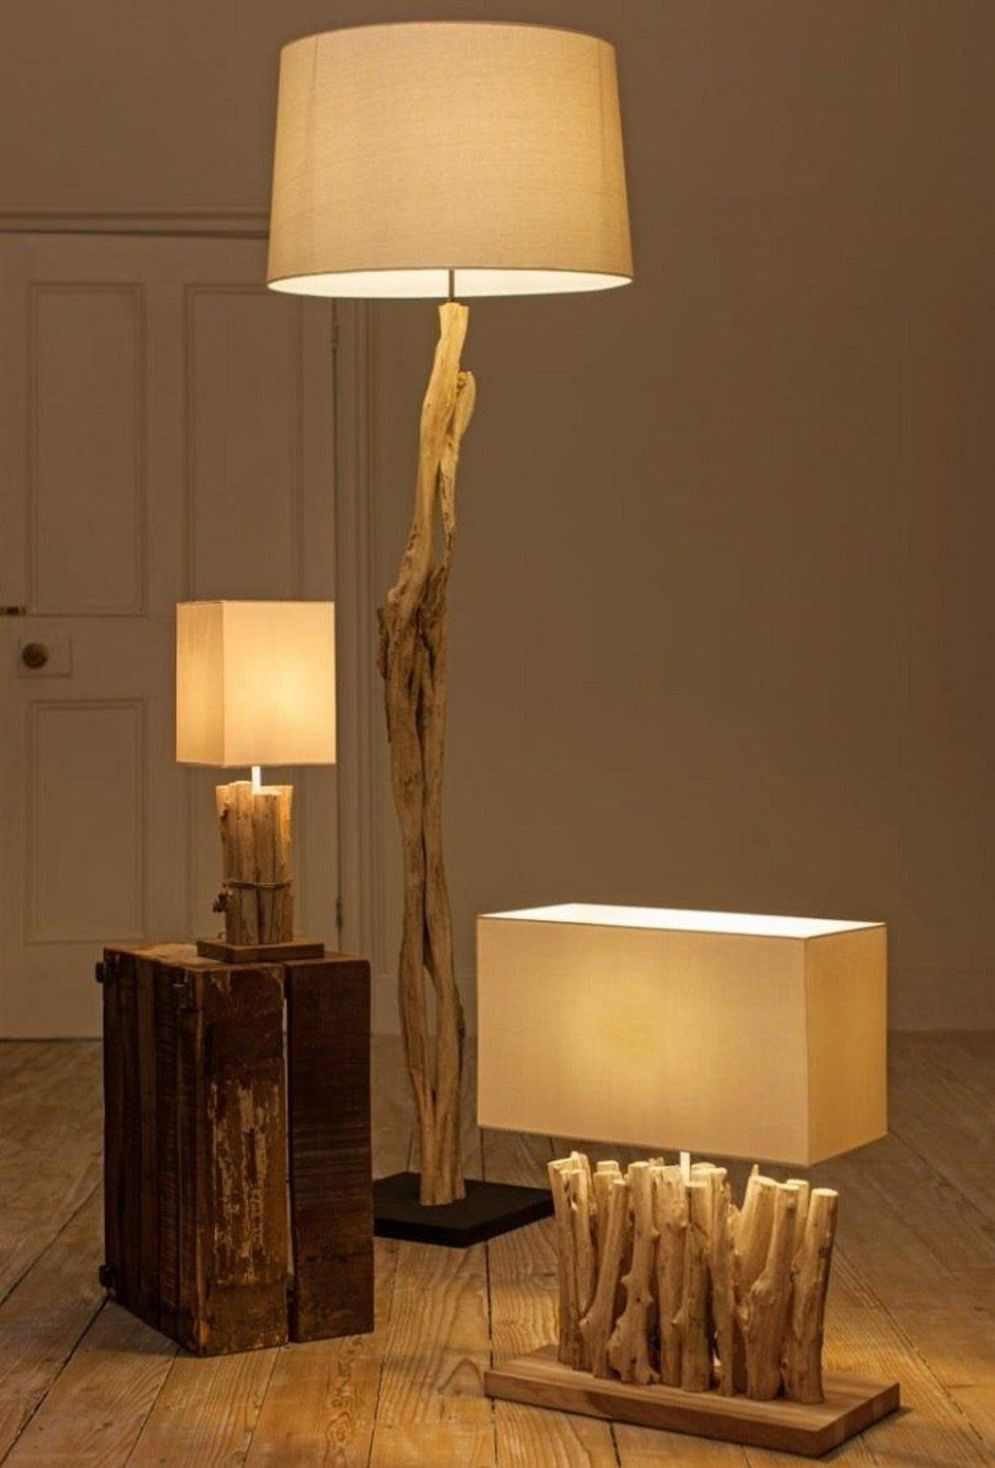 Awesome driftwood lamp stands giving authentic decoration in natural art style Image 2